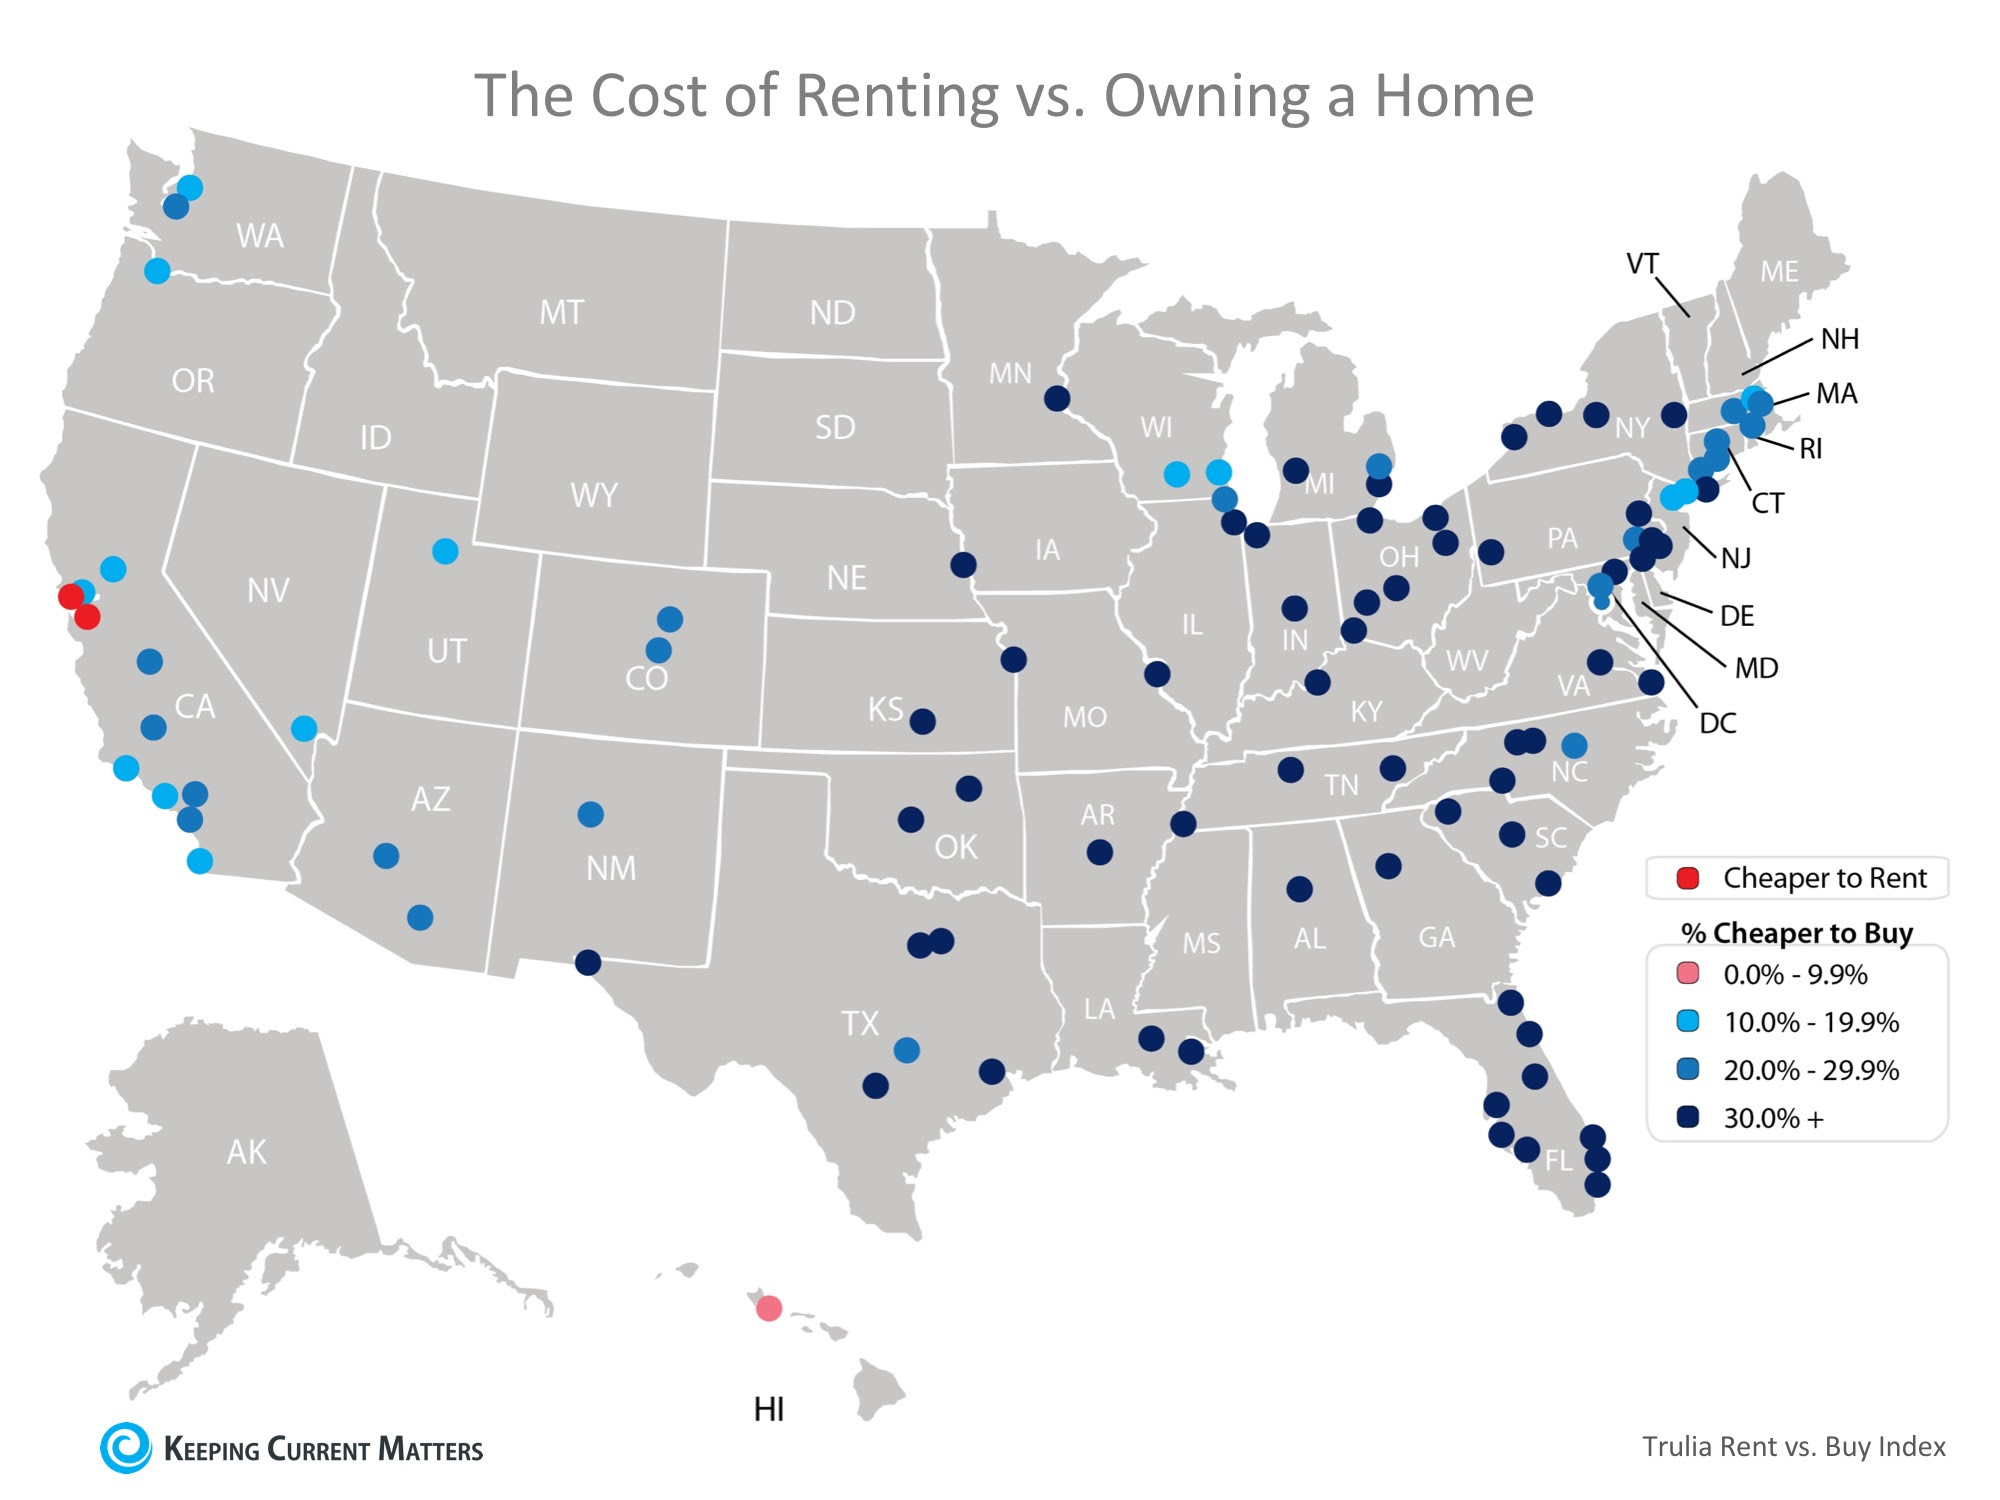 Buying Is Now 26.3% Cheaper Than Renting in the US | Keeping Current Matters